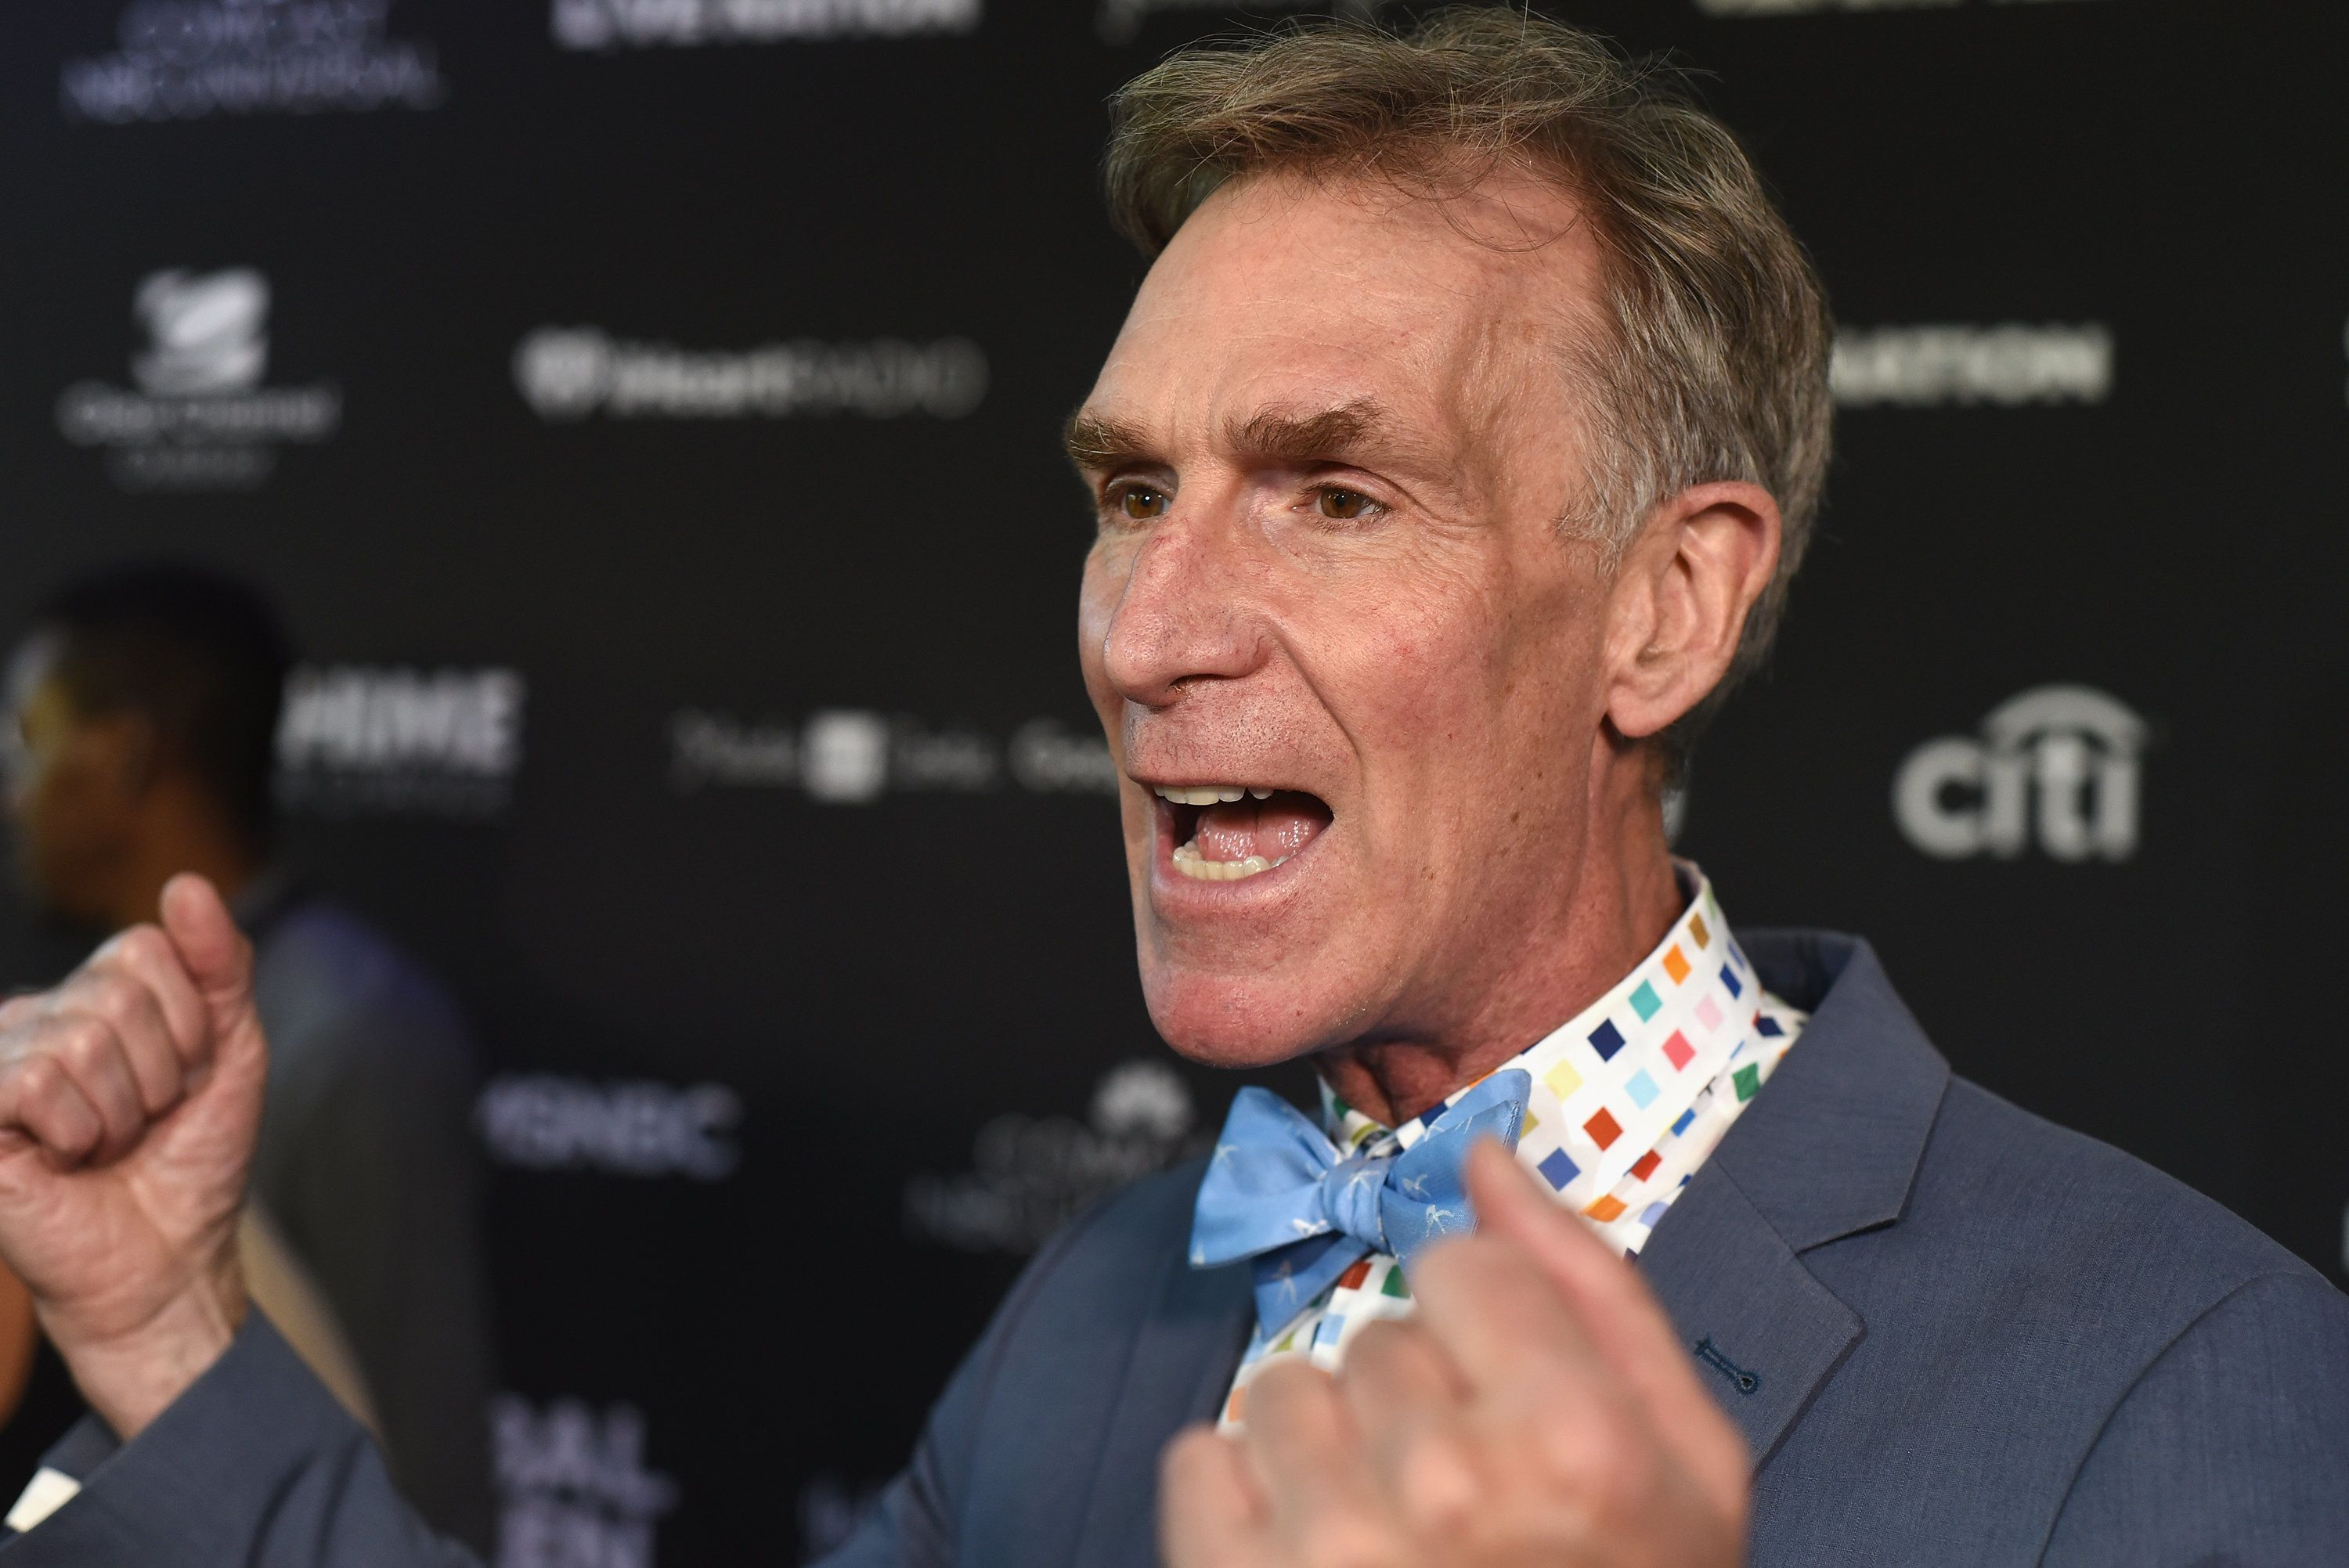 NEW YORK, NY - SEPTEMBER 24:  Bill Nye attends the 2016 Global Citizen Festival In Central Park To End Extreme Poverty By 2030 at Central Park on September 24, 2016 in New York City.  (Photo by Noam Galai/Getty Images for Global Citizen)